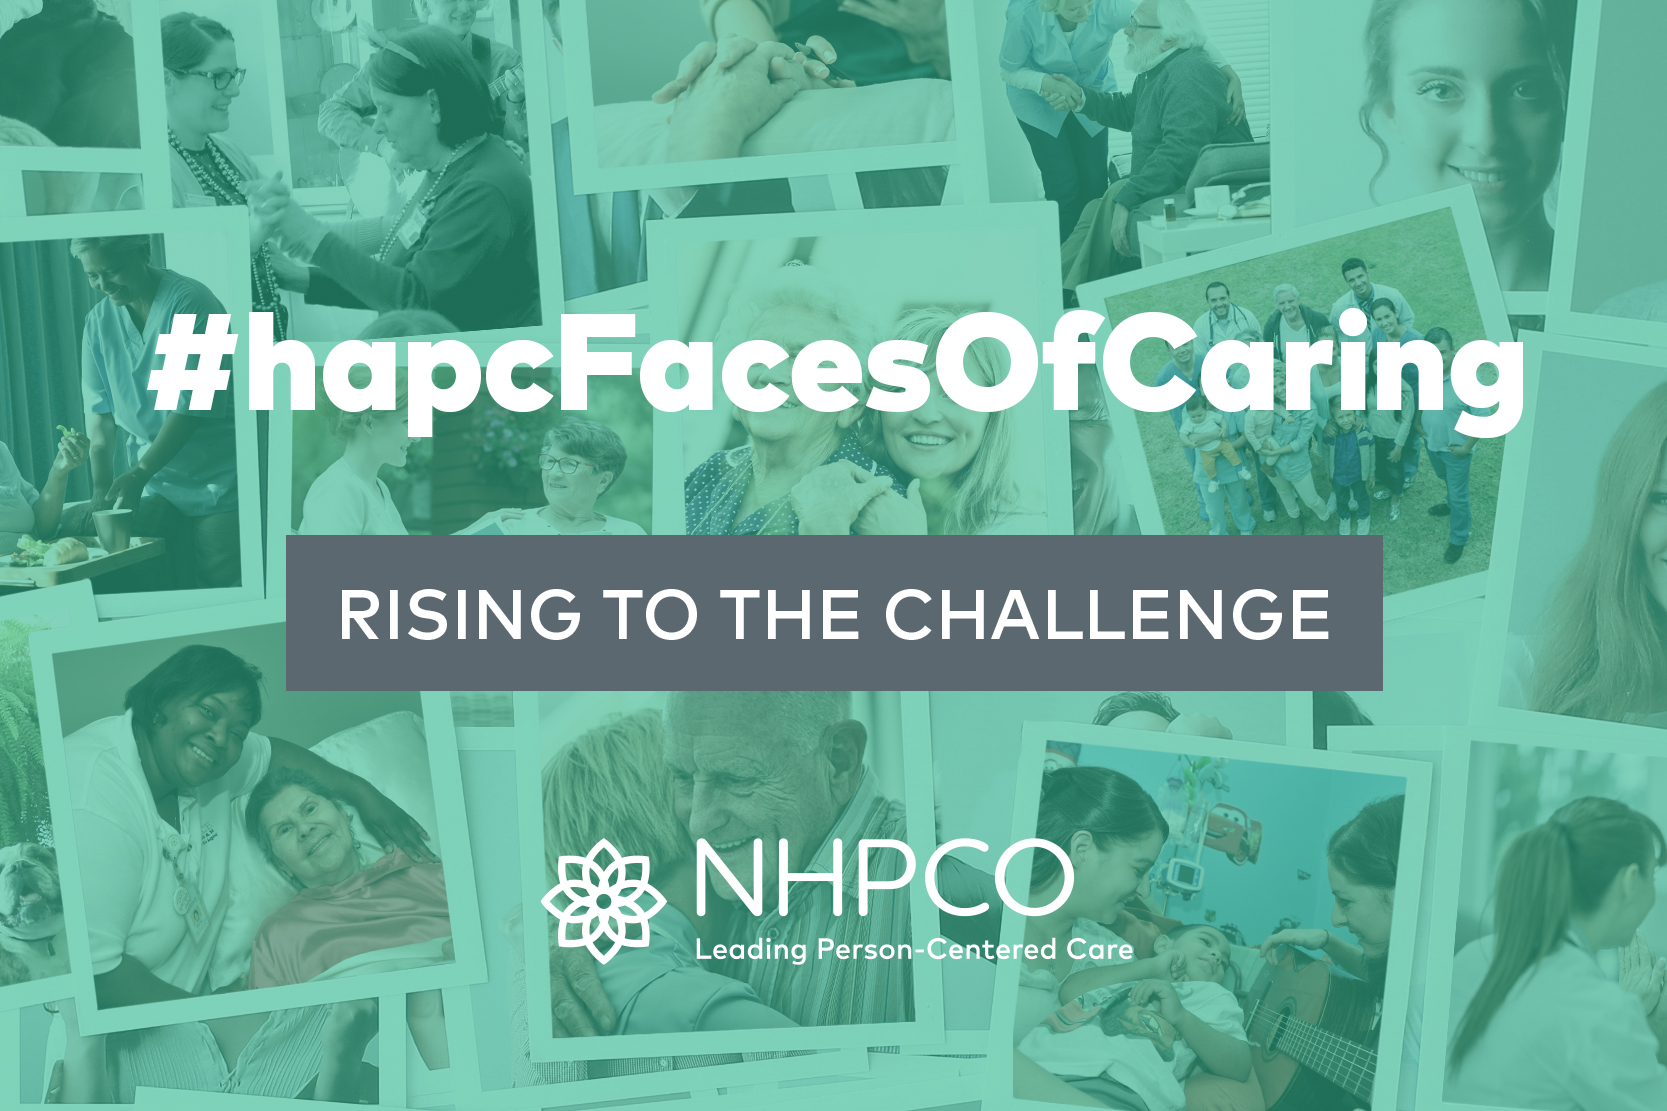 NHPCO Launches Social Media Campaign for Hospice and Palliative Care Community